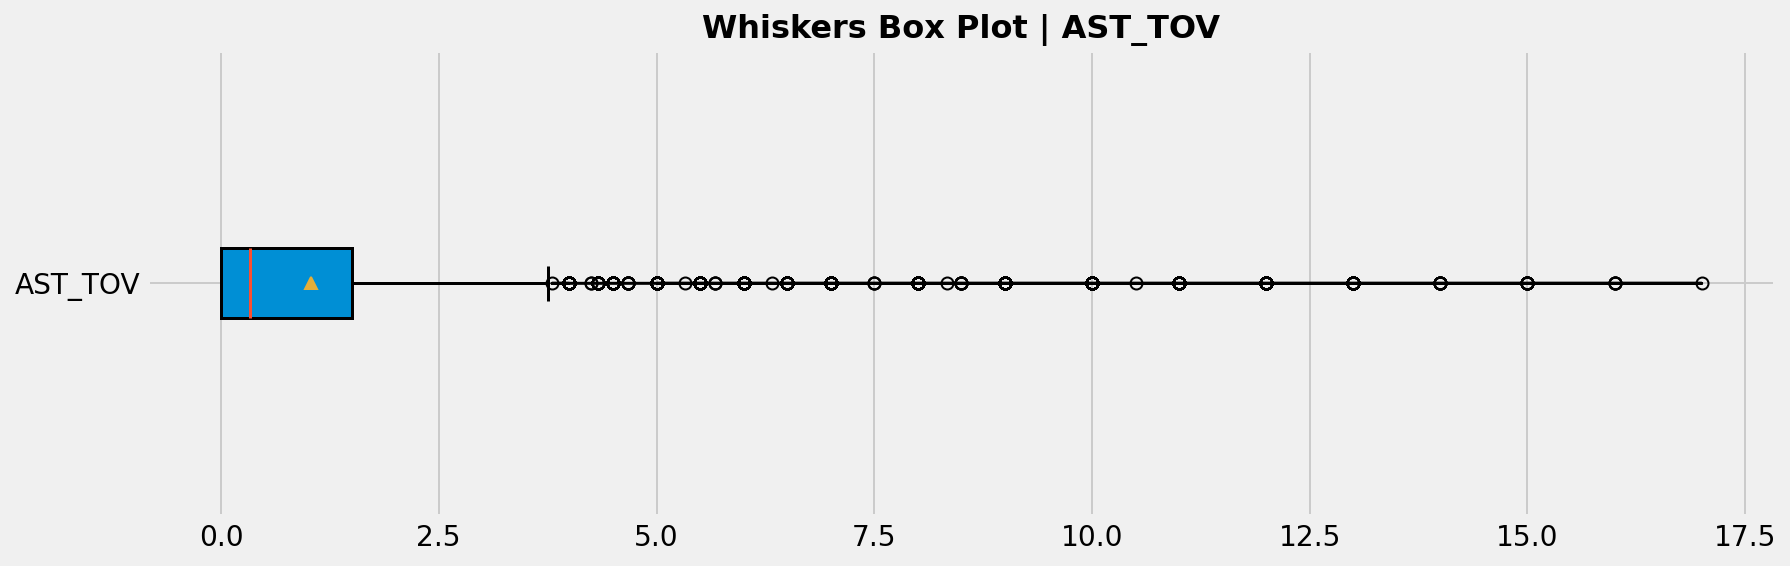 Features' Whisker Box Plots